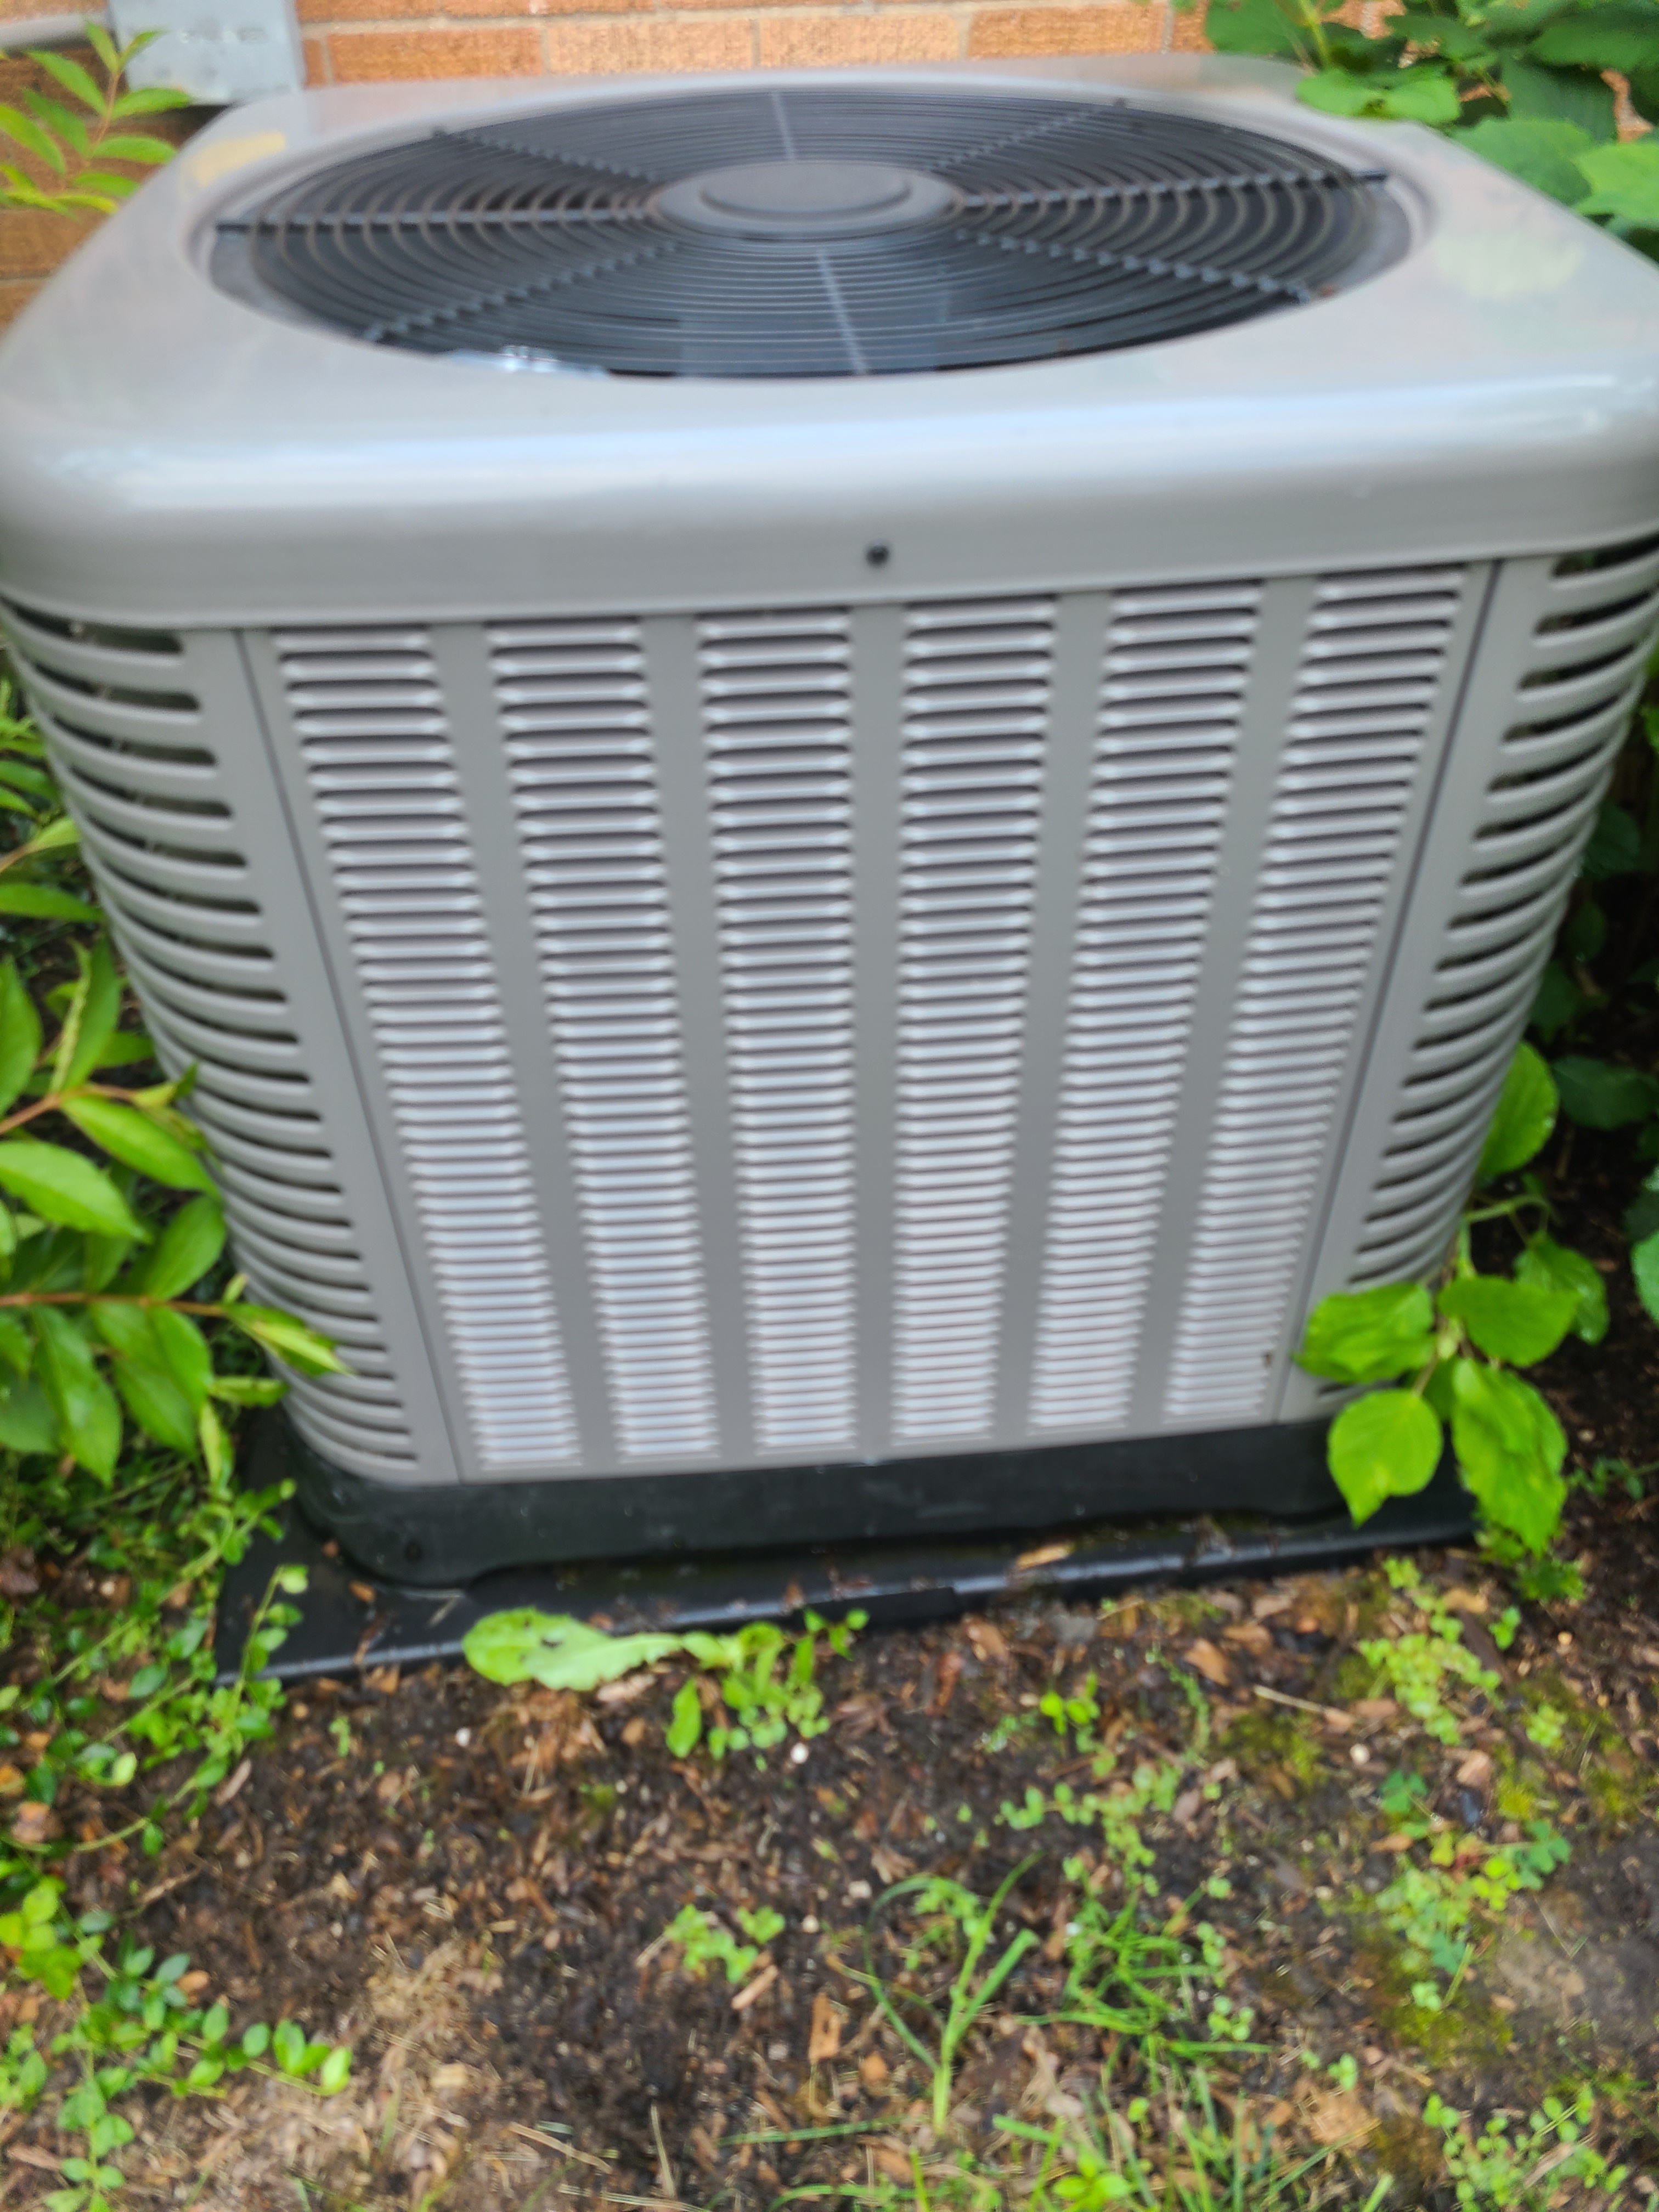 Performed preventative maintenance on a RUUD R410A system to extend the life of the unit. Checked voltage, amperage, temperatures, pressures, and microfarads. Washed condenser coil thoroughly.